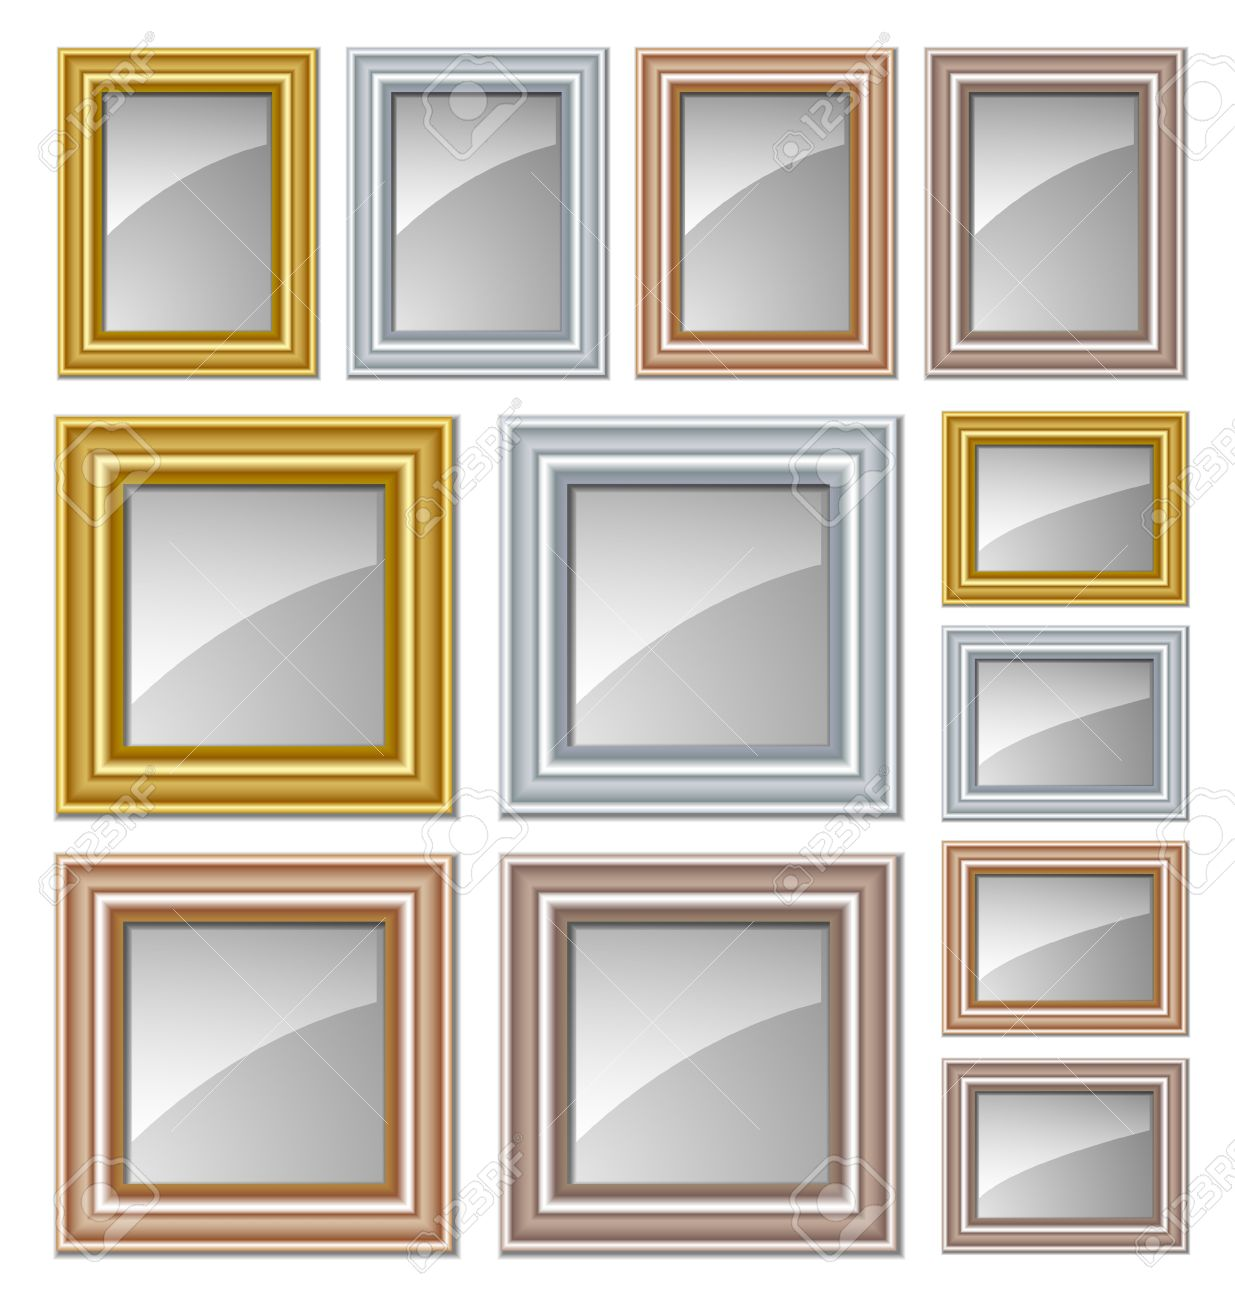 Gold, Silver, Bronze And Copper Frames Suitable For Pictures ...